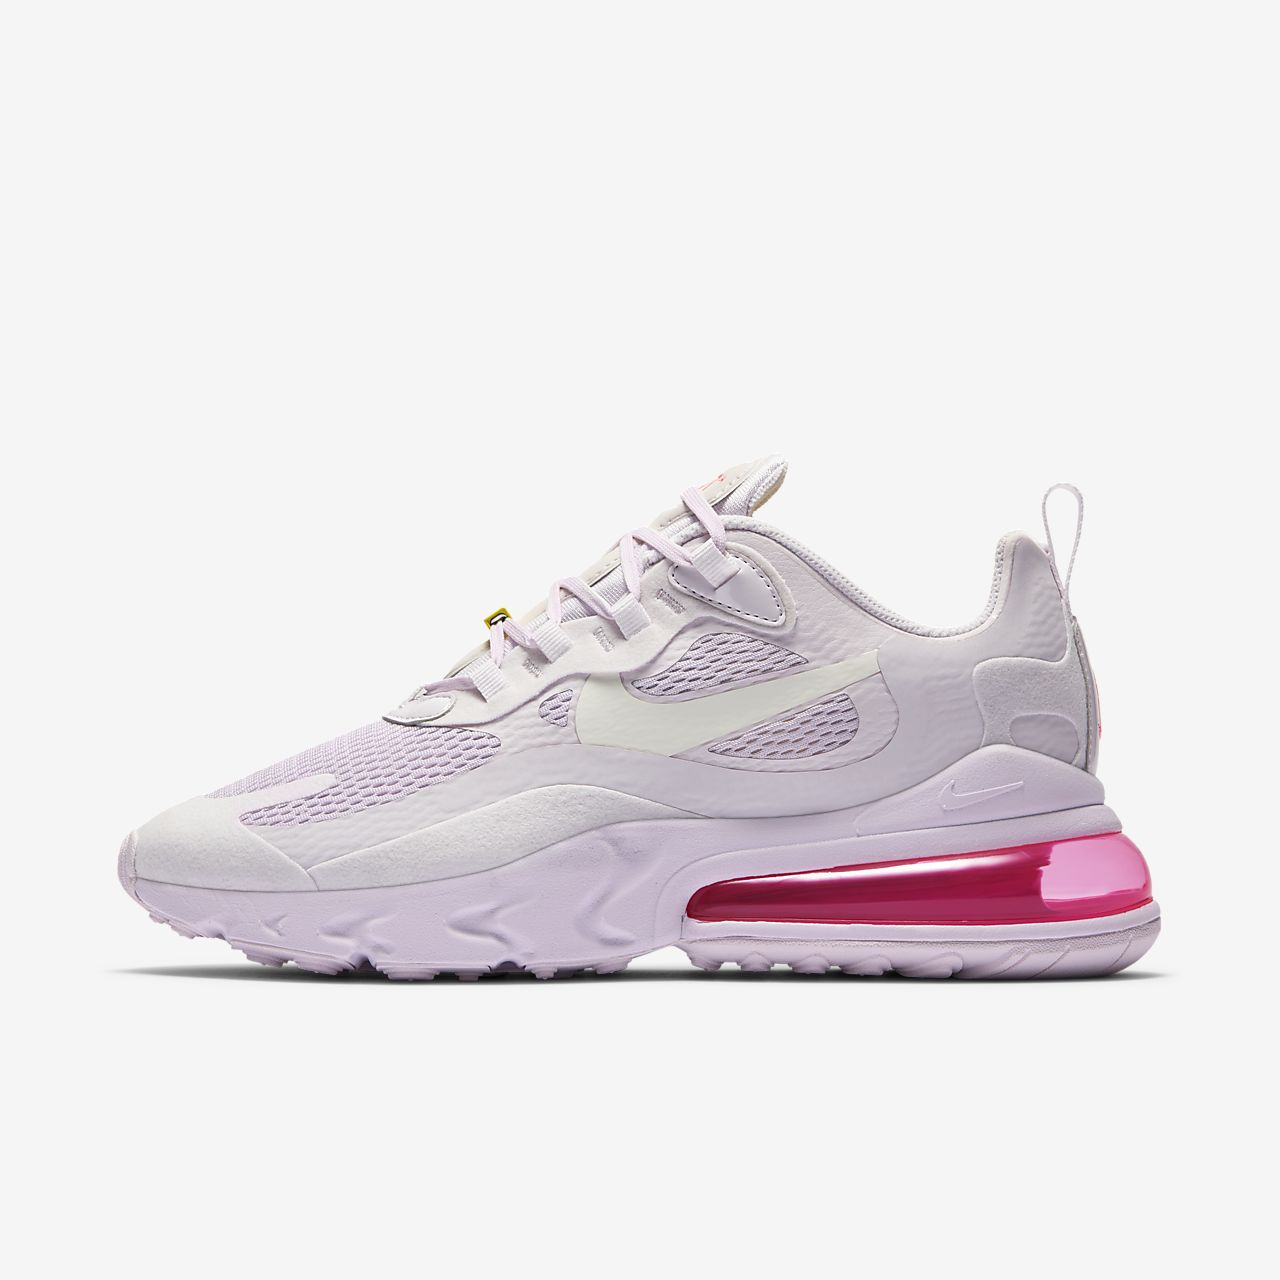 air max 270 react womens pink